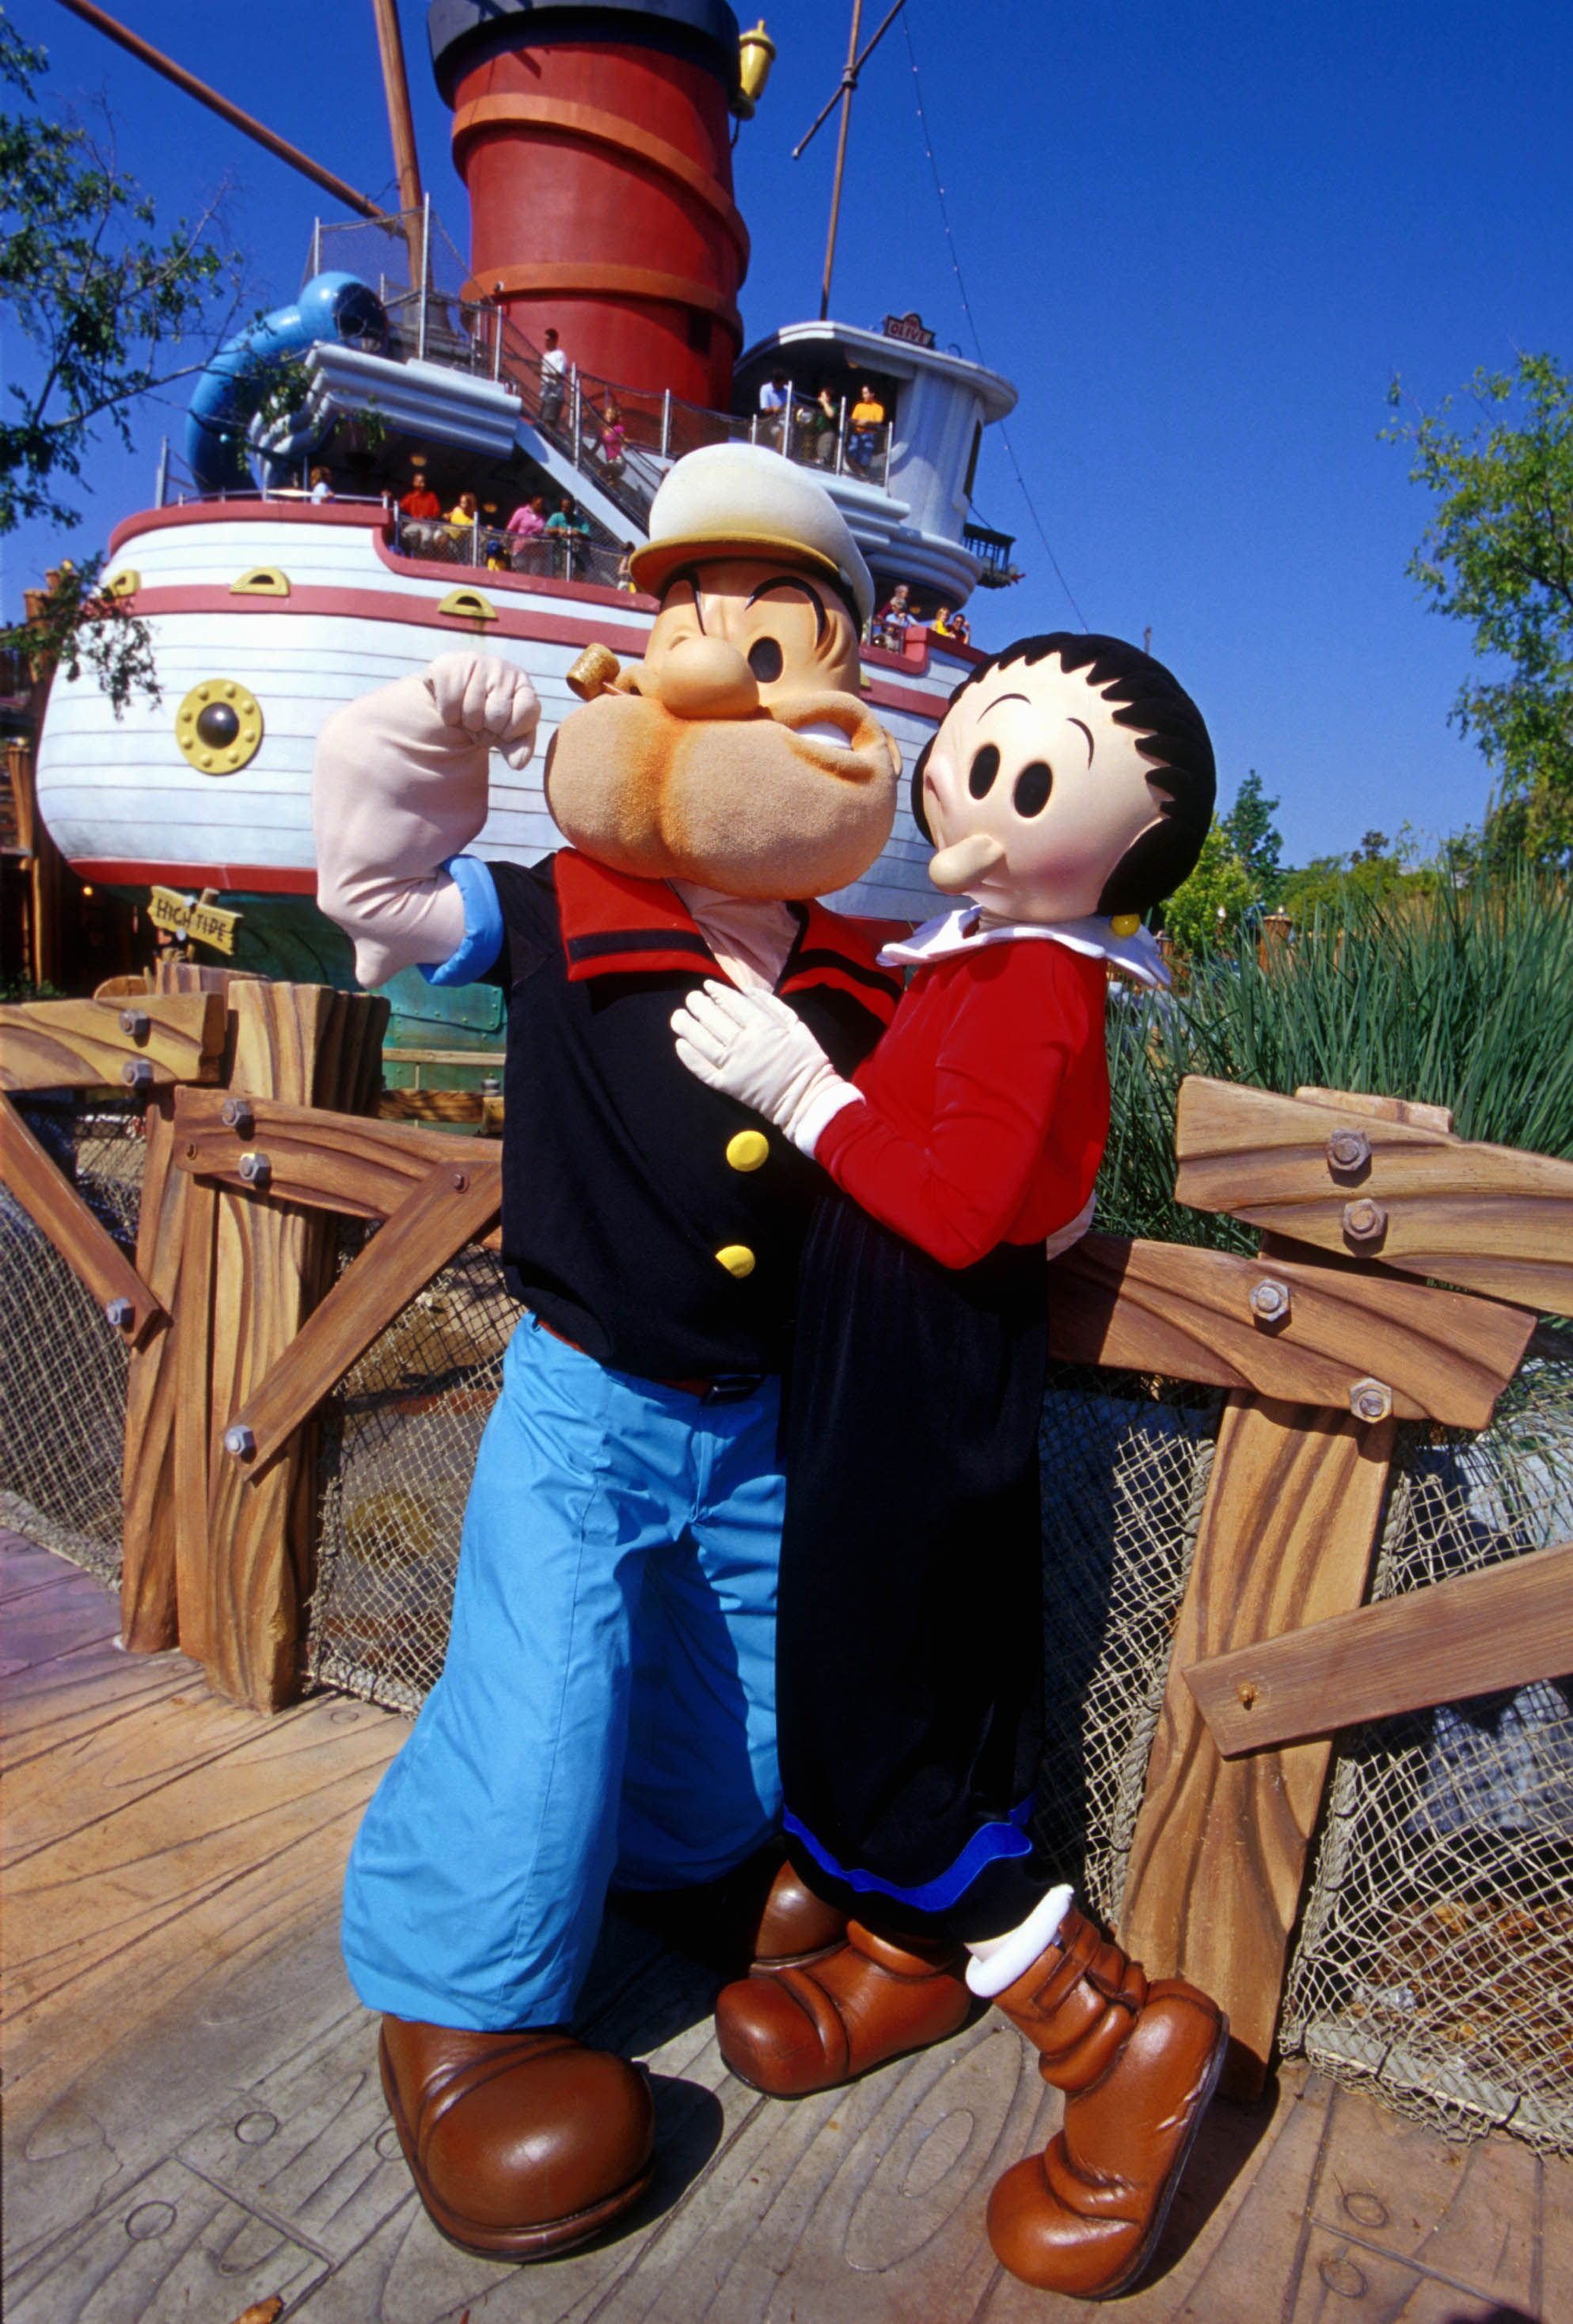 Pics Popeye Me Ship For Phone Image Wallpaper Download